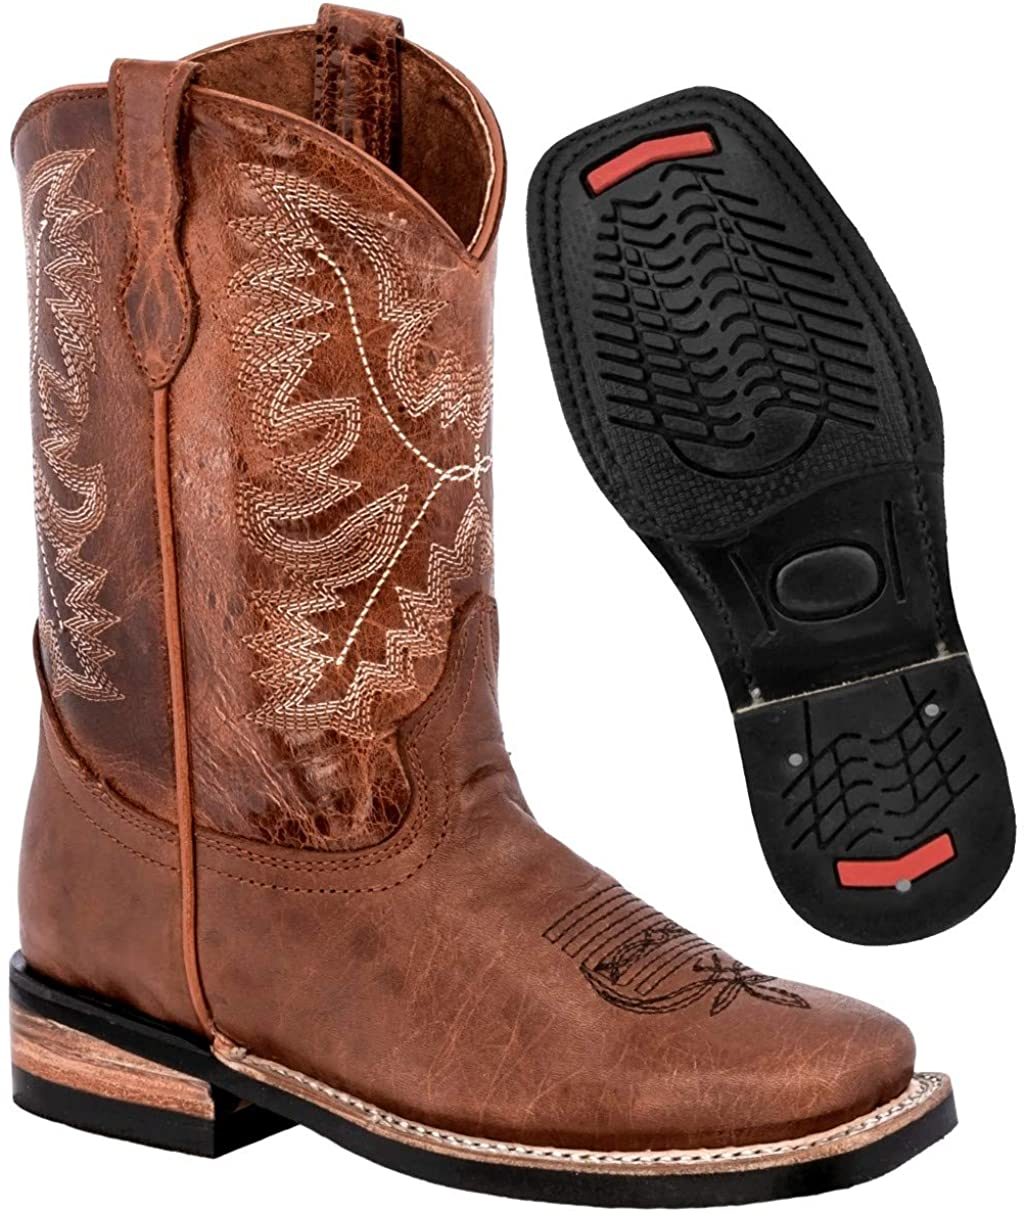 Kids 10 Toddler Western Cowboy Boots Real Leather Square Toe Pull On 10 Toddler Chedron